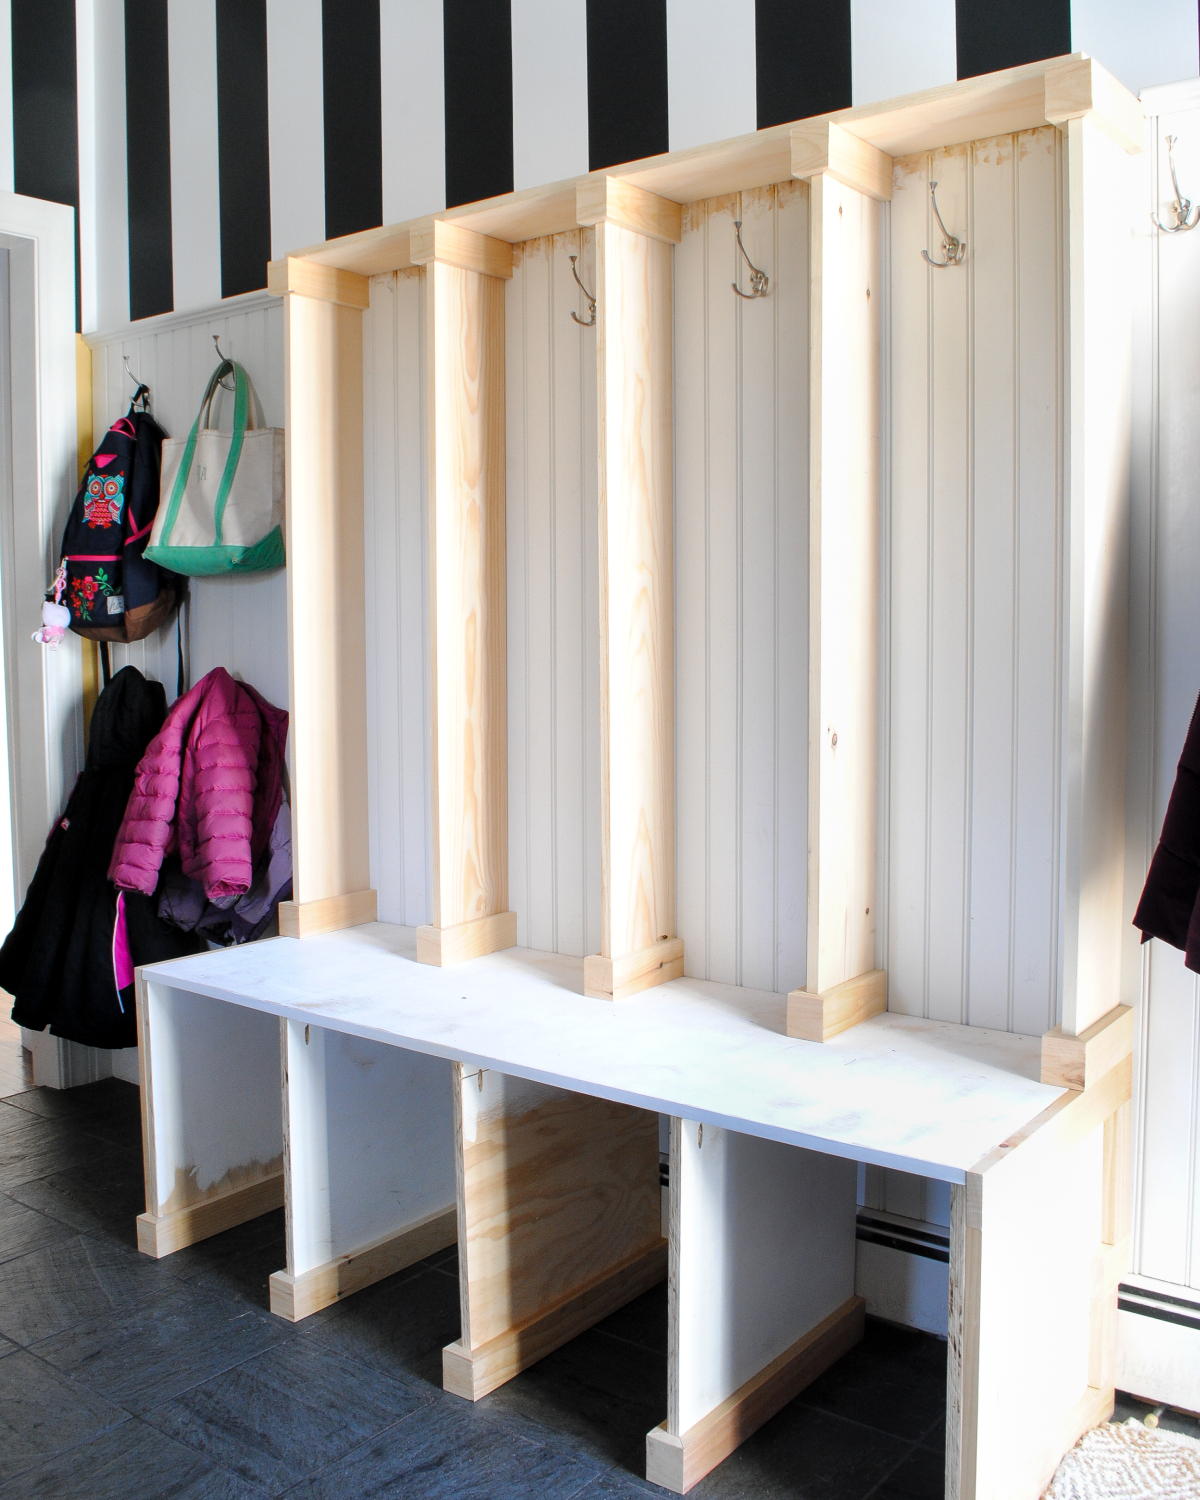 Built In Storage Cabinet Plans: Mudroom